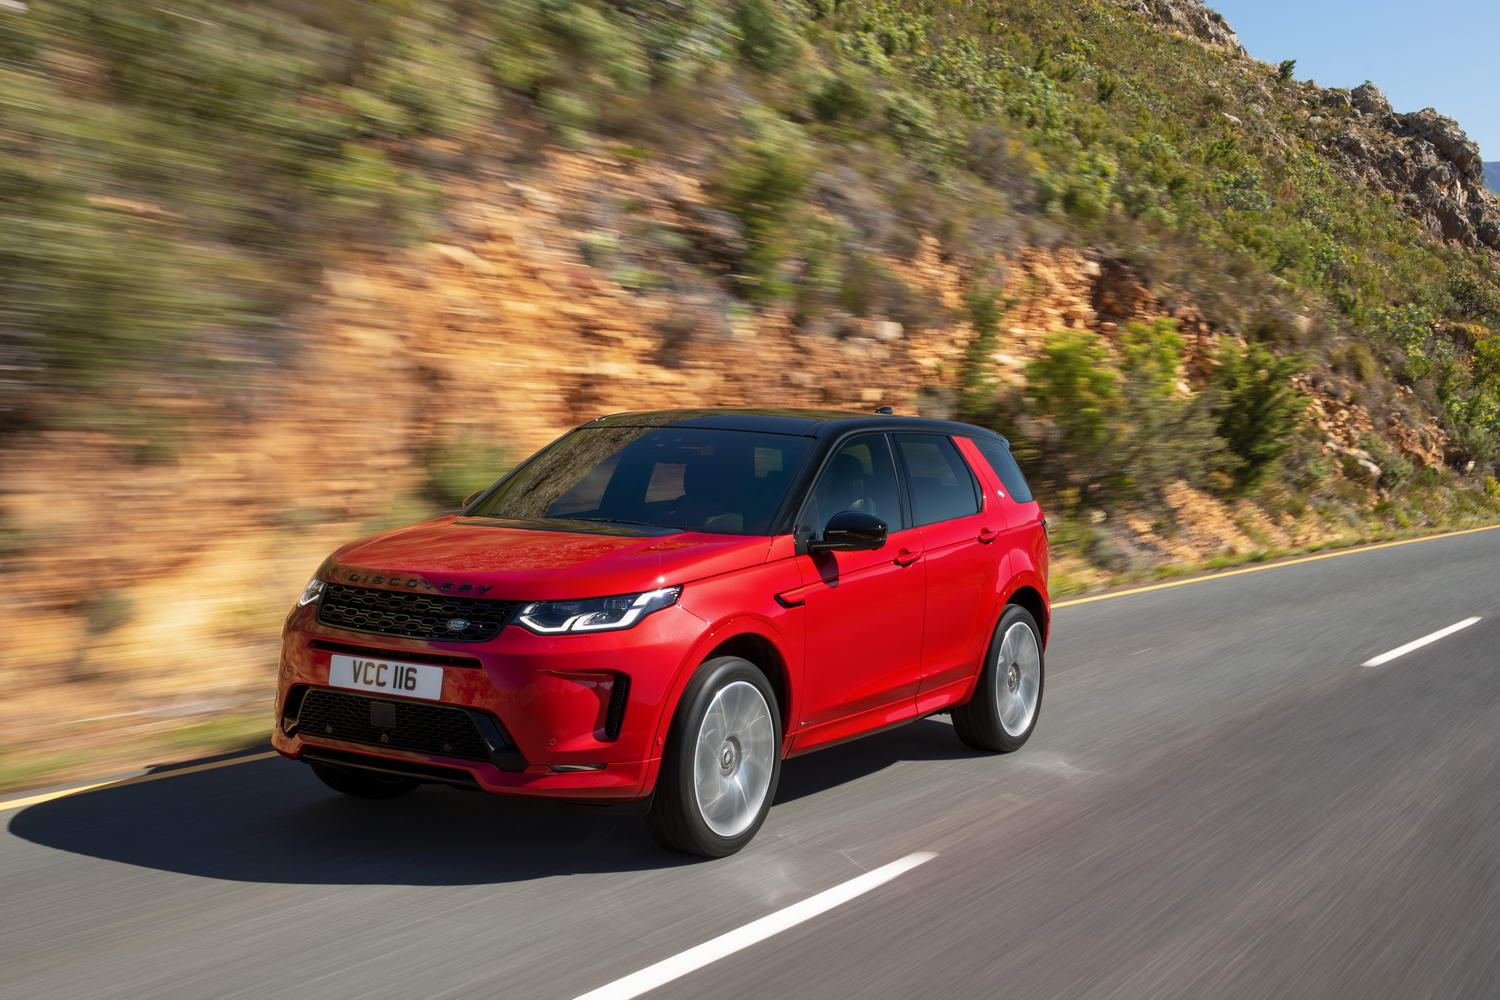 Car News | Land Rover announces new 202-plate finance offers | CompleteCar.ie